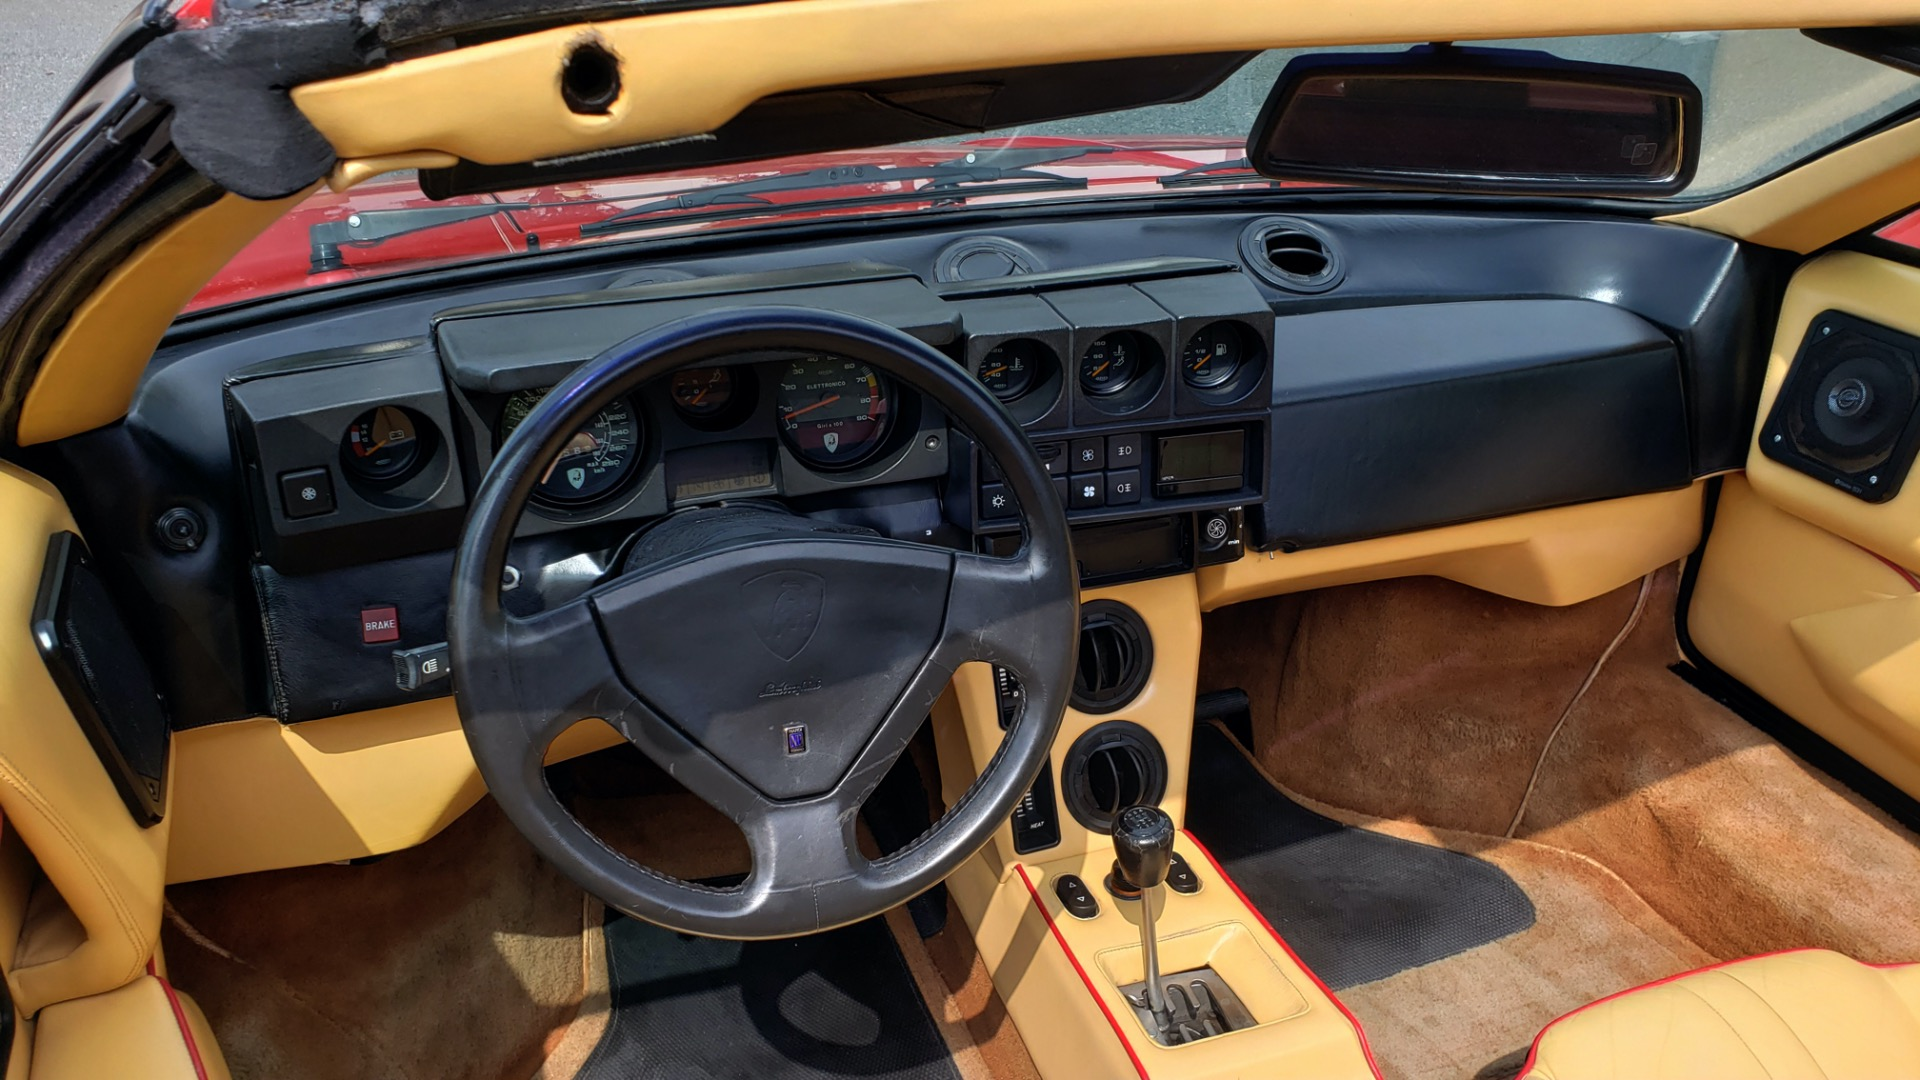 Used 1988 Lamborghini Jalpa 3.5 / 5-Speed Man / Low Miles / Excellent Condition for sale $108,995 at Formula Imports in Charlotte NC 28227 33